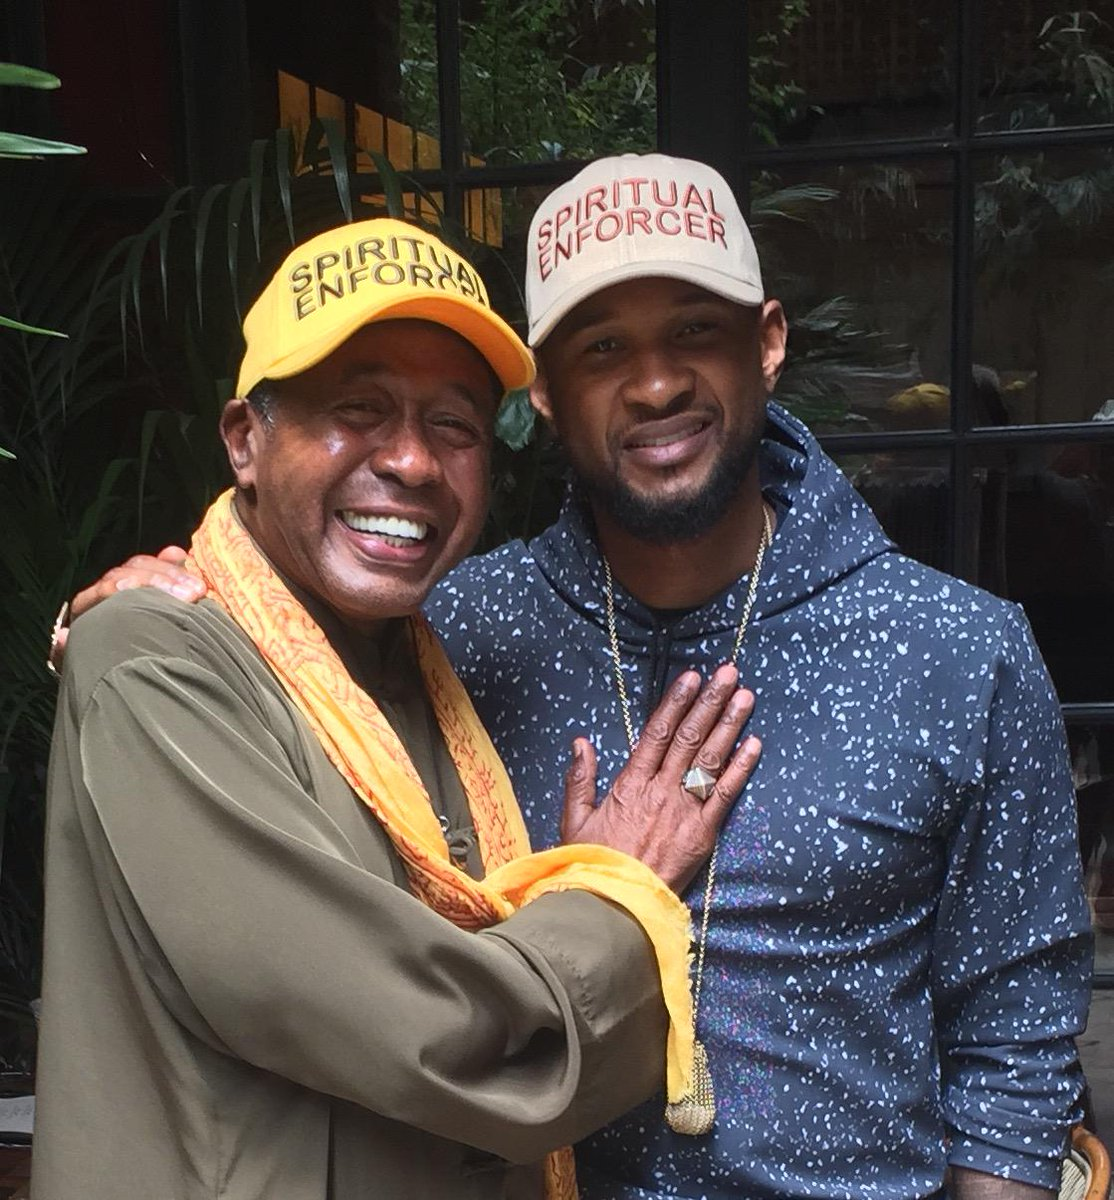 With my Godson @Usher #SpiritualEnforcer http://t.co/Y3MS8QaCmr